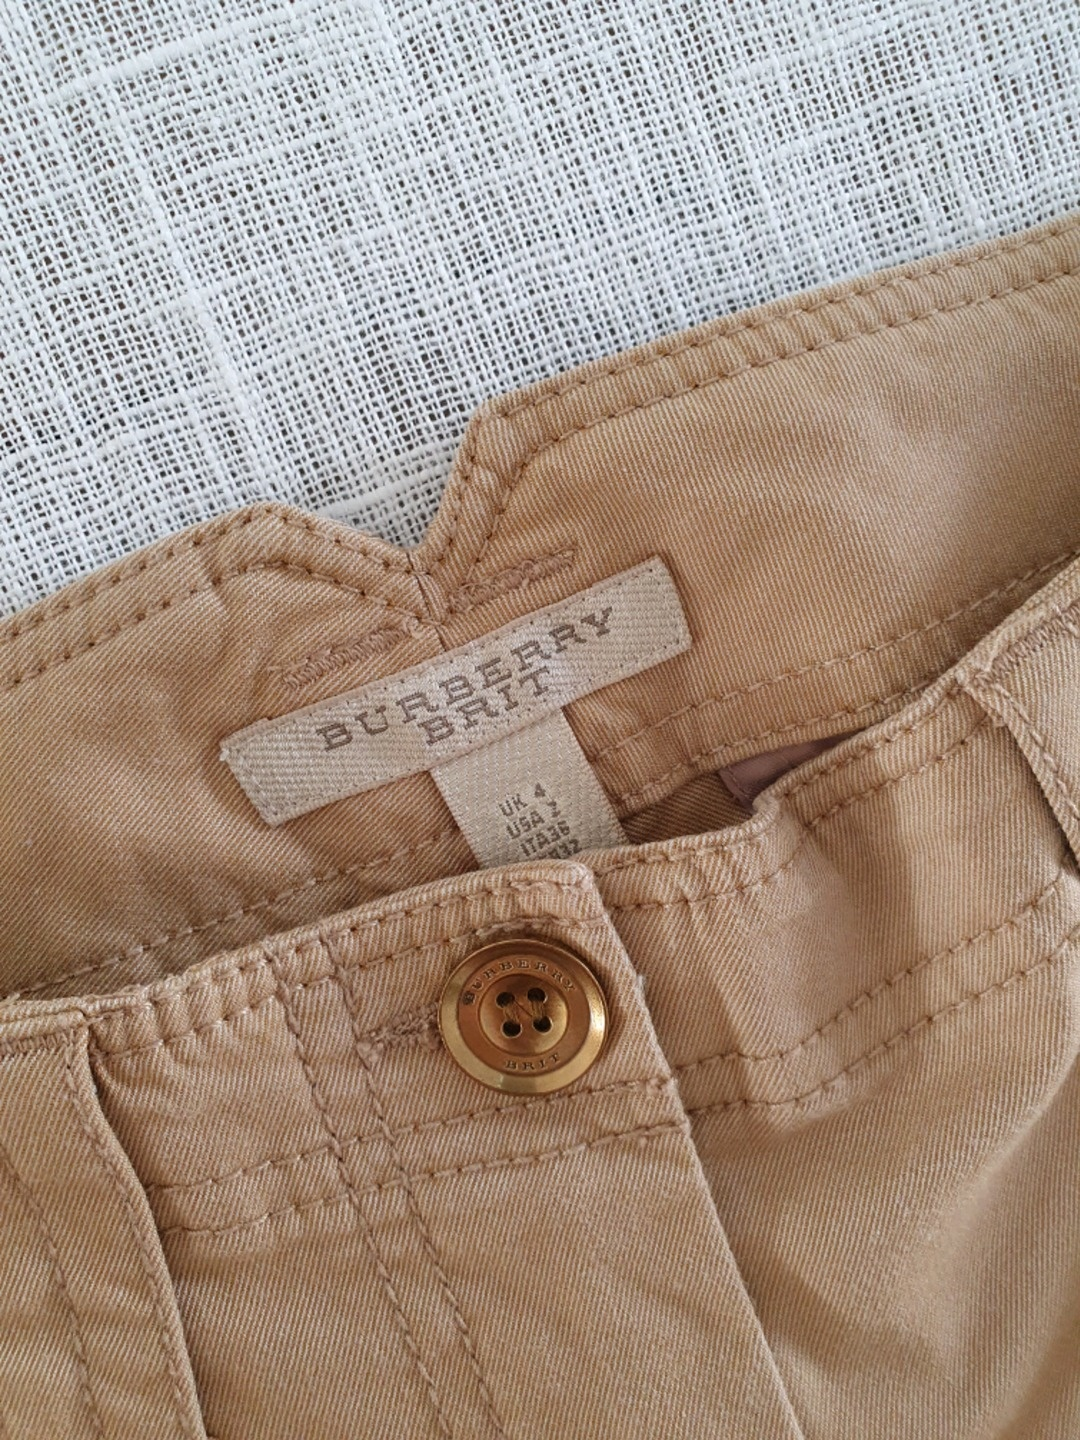 Women's trousers & jeans - BURBERRY photo 3